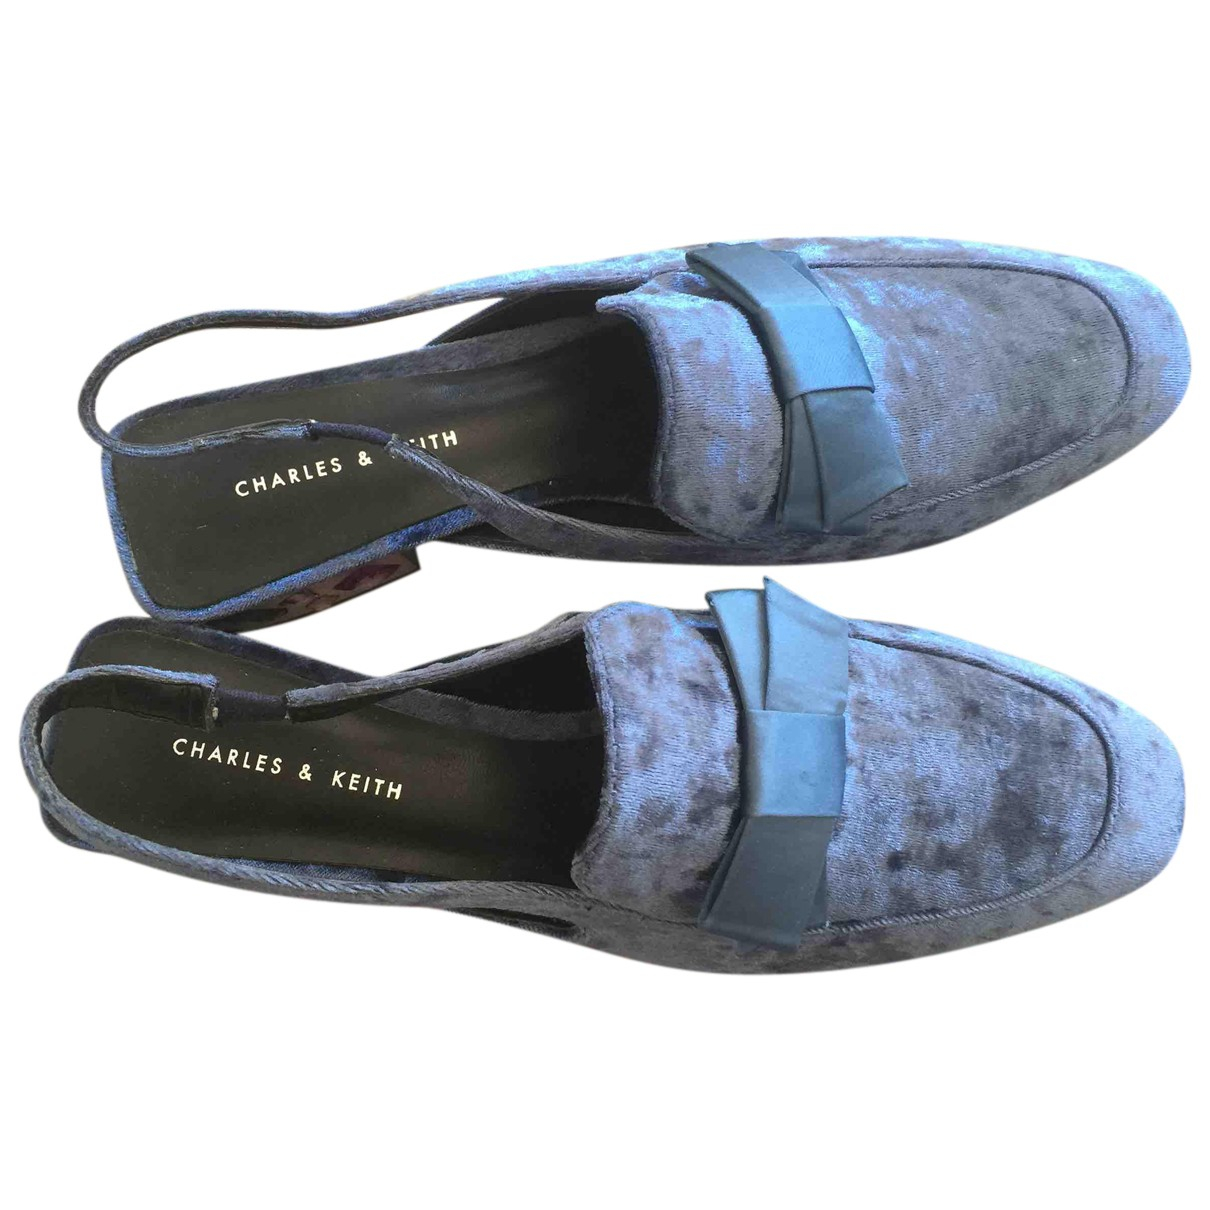 Charles & Keith N Blue Velvet Heels for Women 37 EU